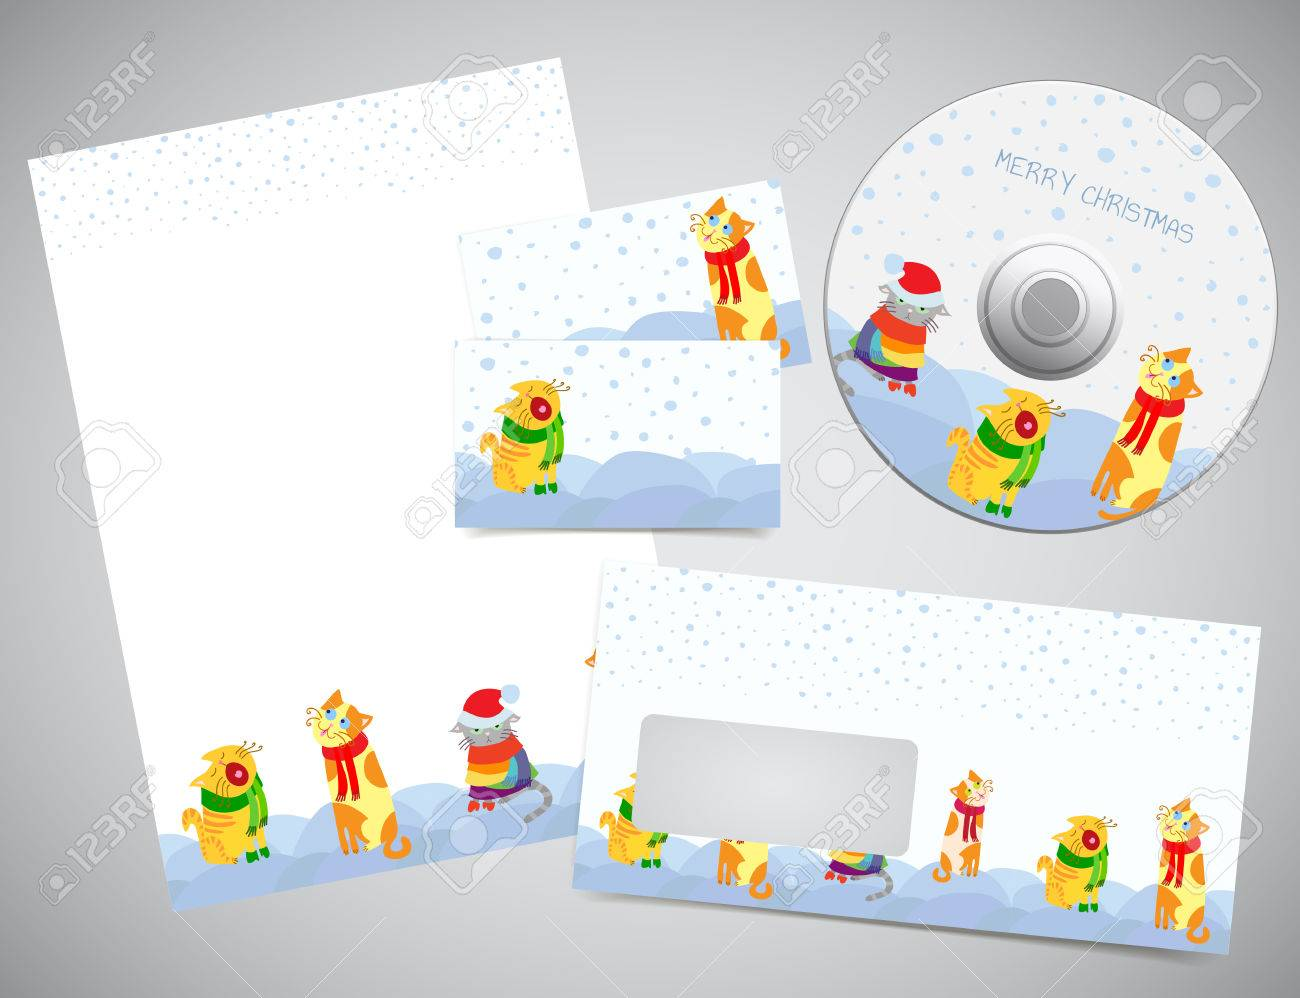 corporate identity or gift set christmas design print templates corporate identity or gift set christmas design print templates letter paper page business